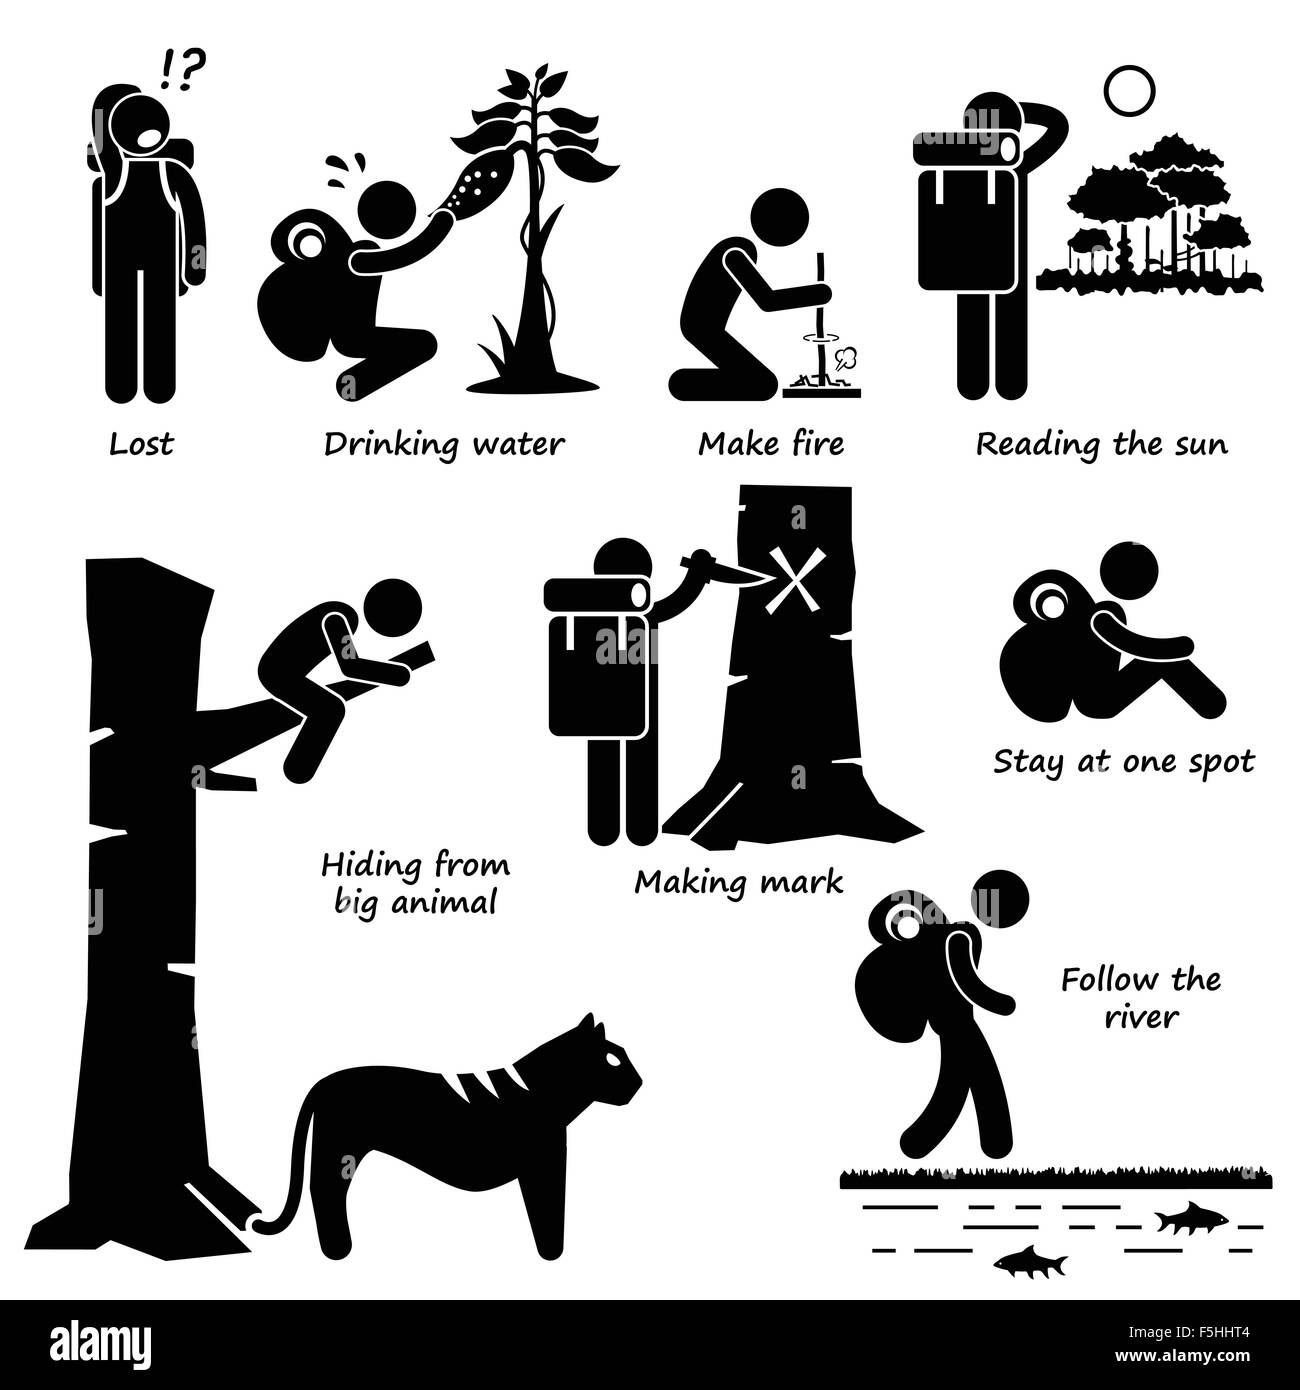 Survival Tips Guides when Lost in the Jungle Actions Stick Figure Pictogram Icons - Stock Image